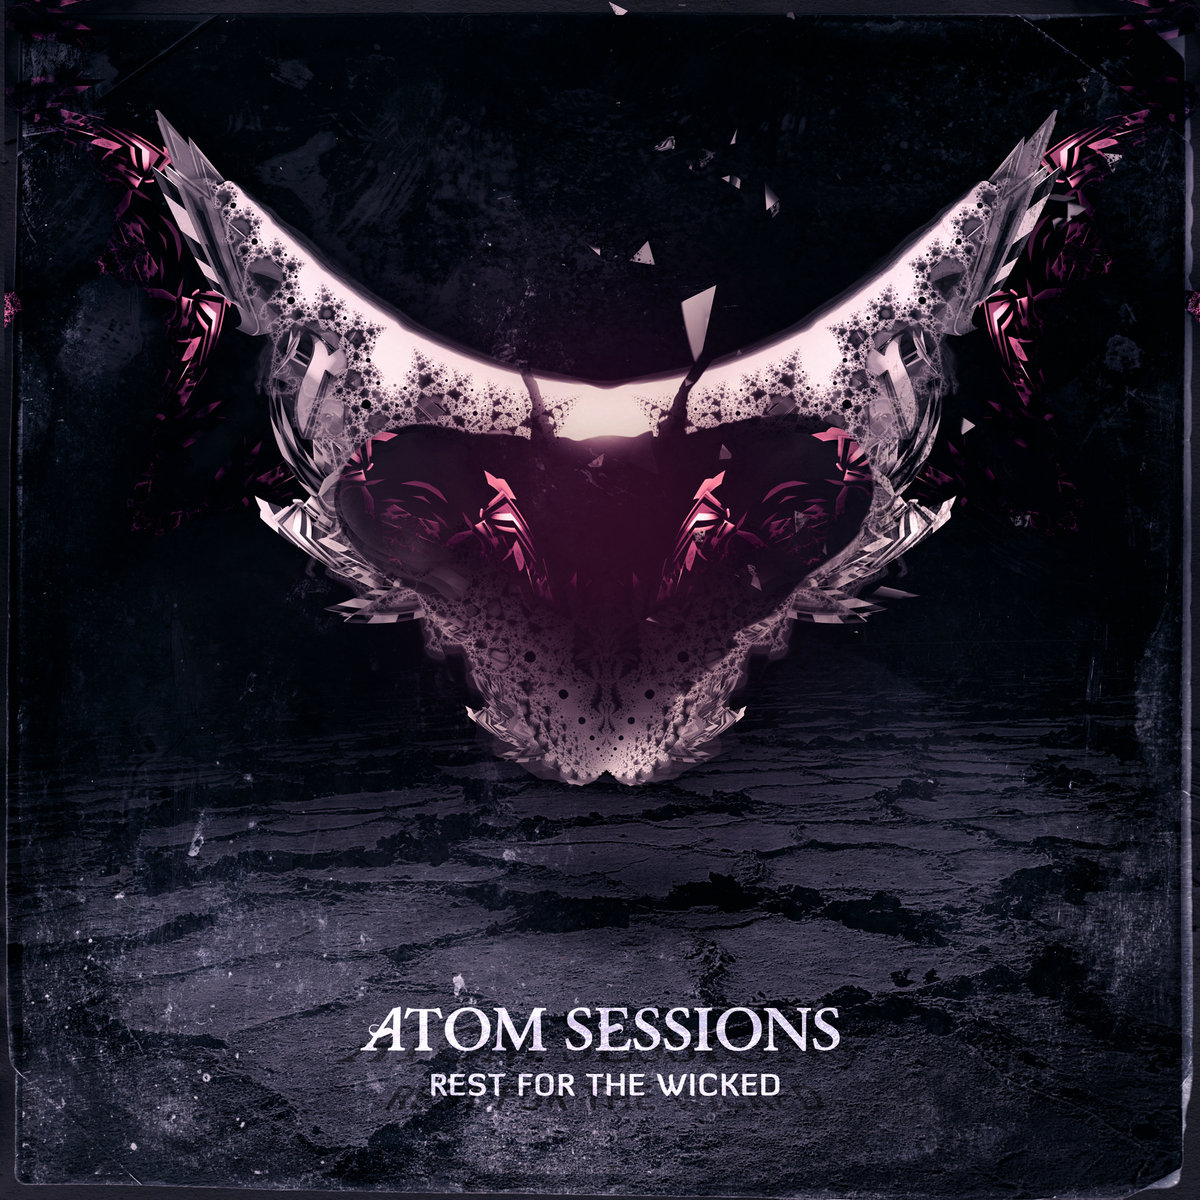 Atom Sessions - Tension @ 'Rest For The Wicked' album (bass, electronic)